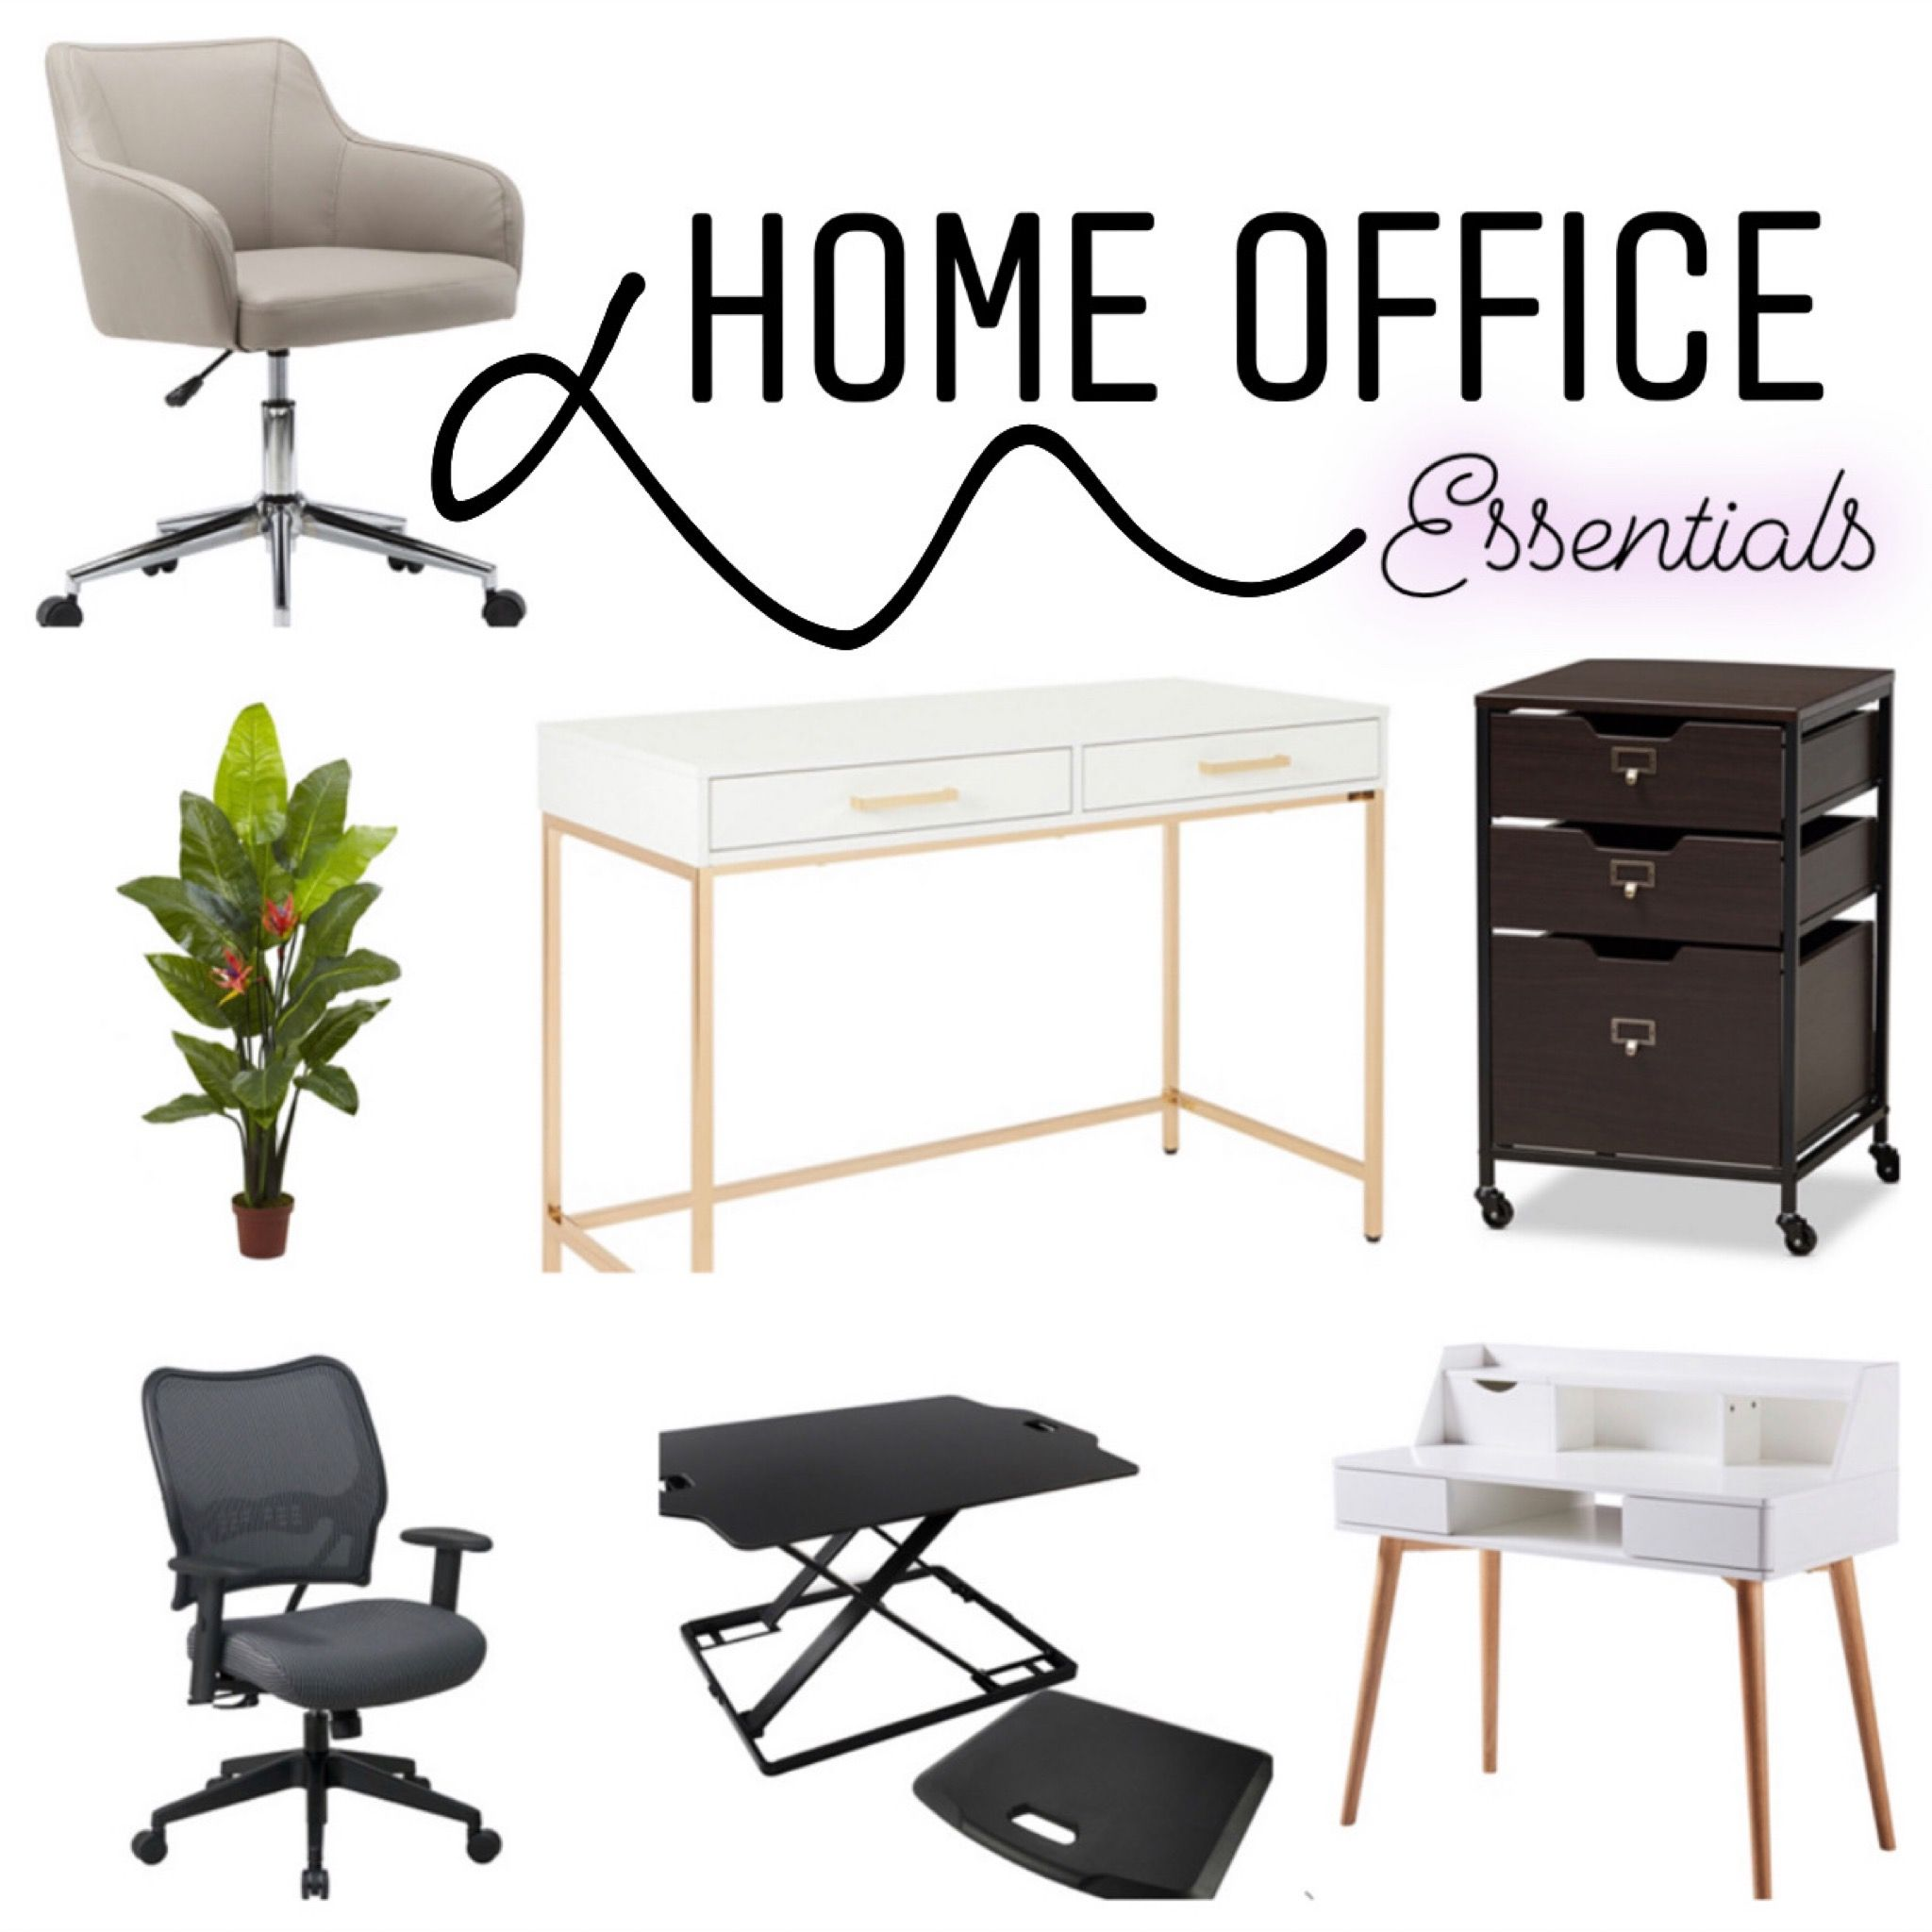 Home Office Essentials In 2020